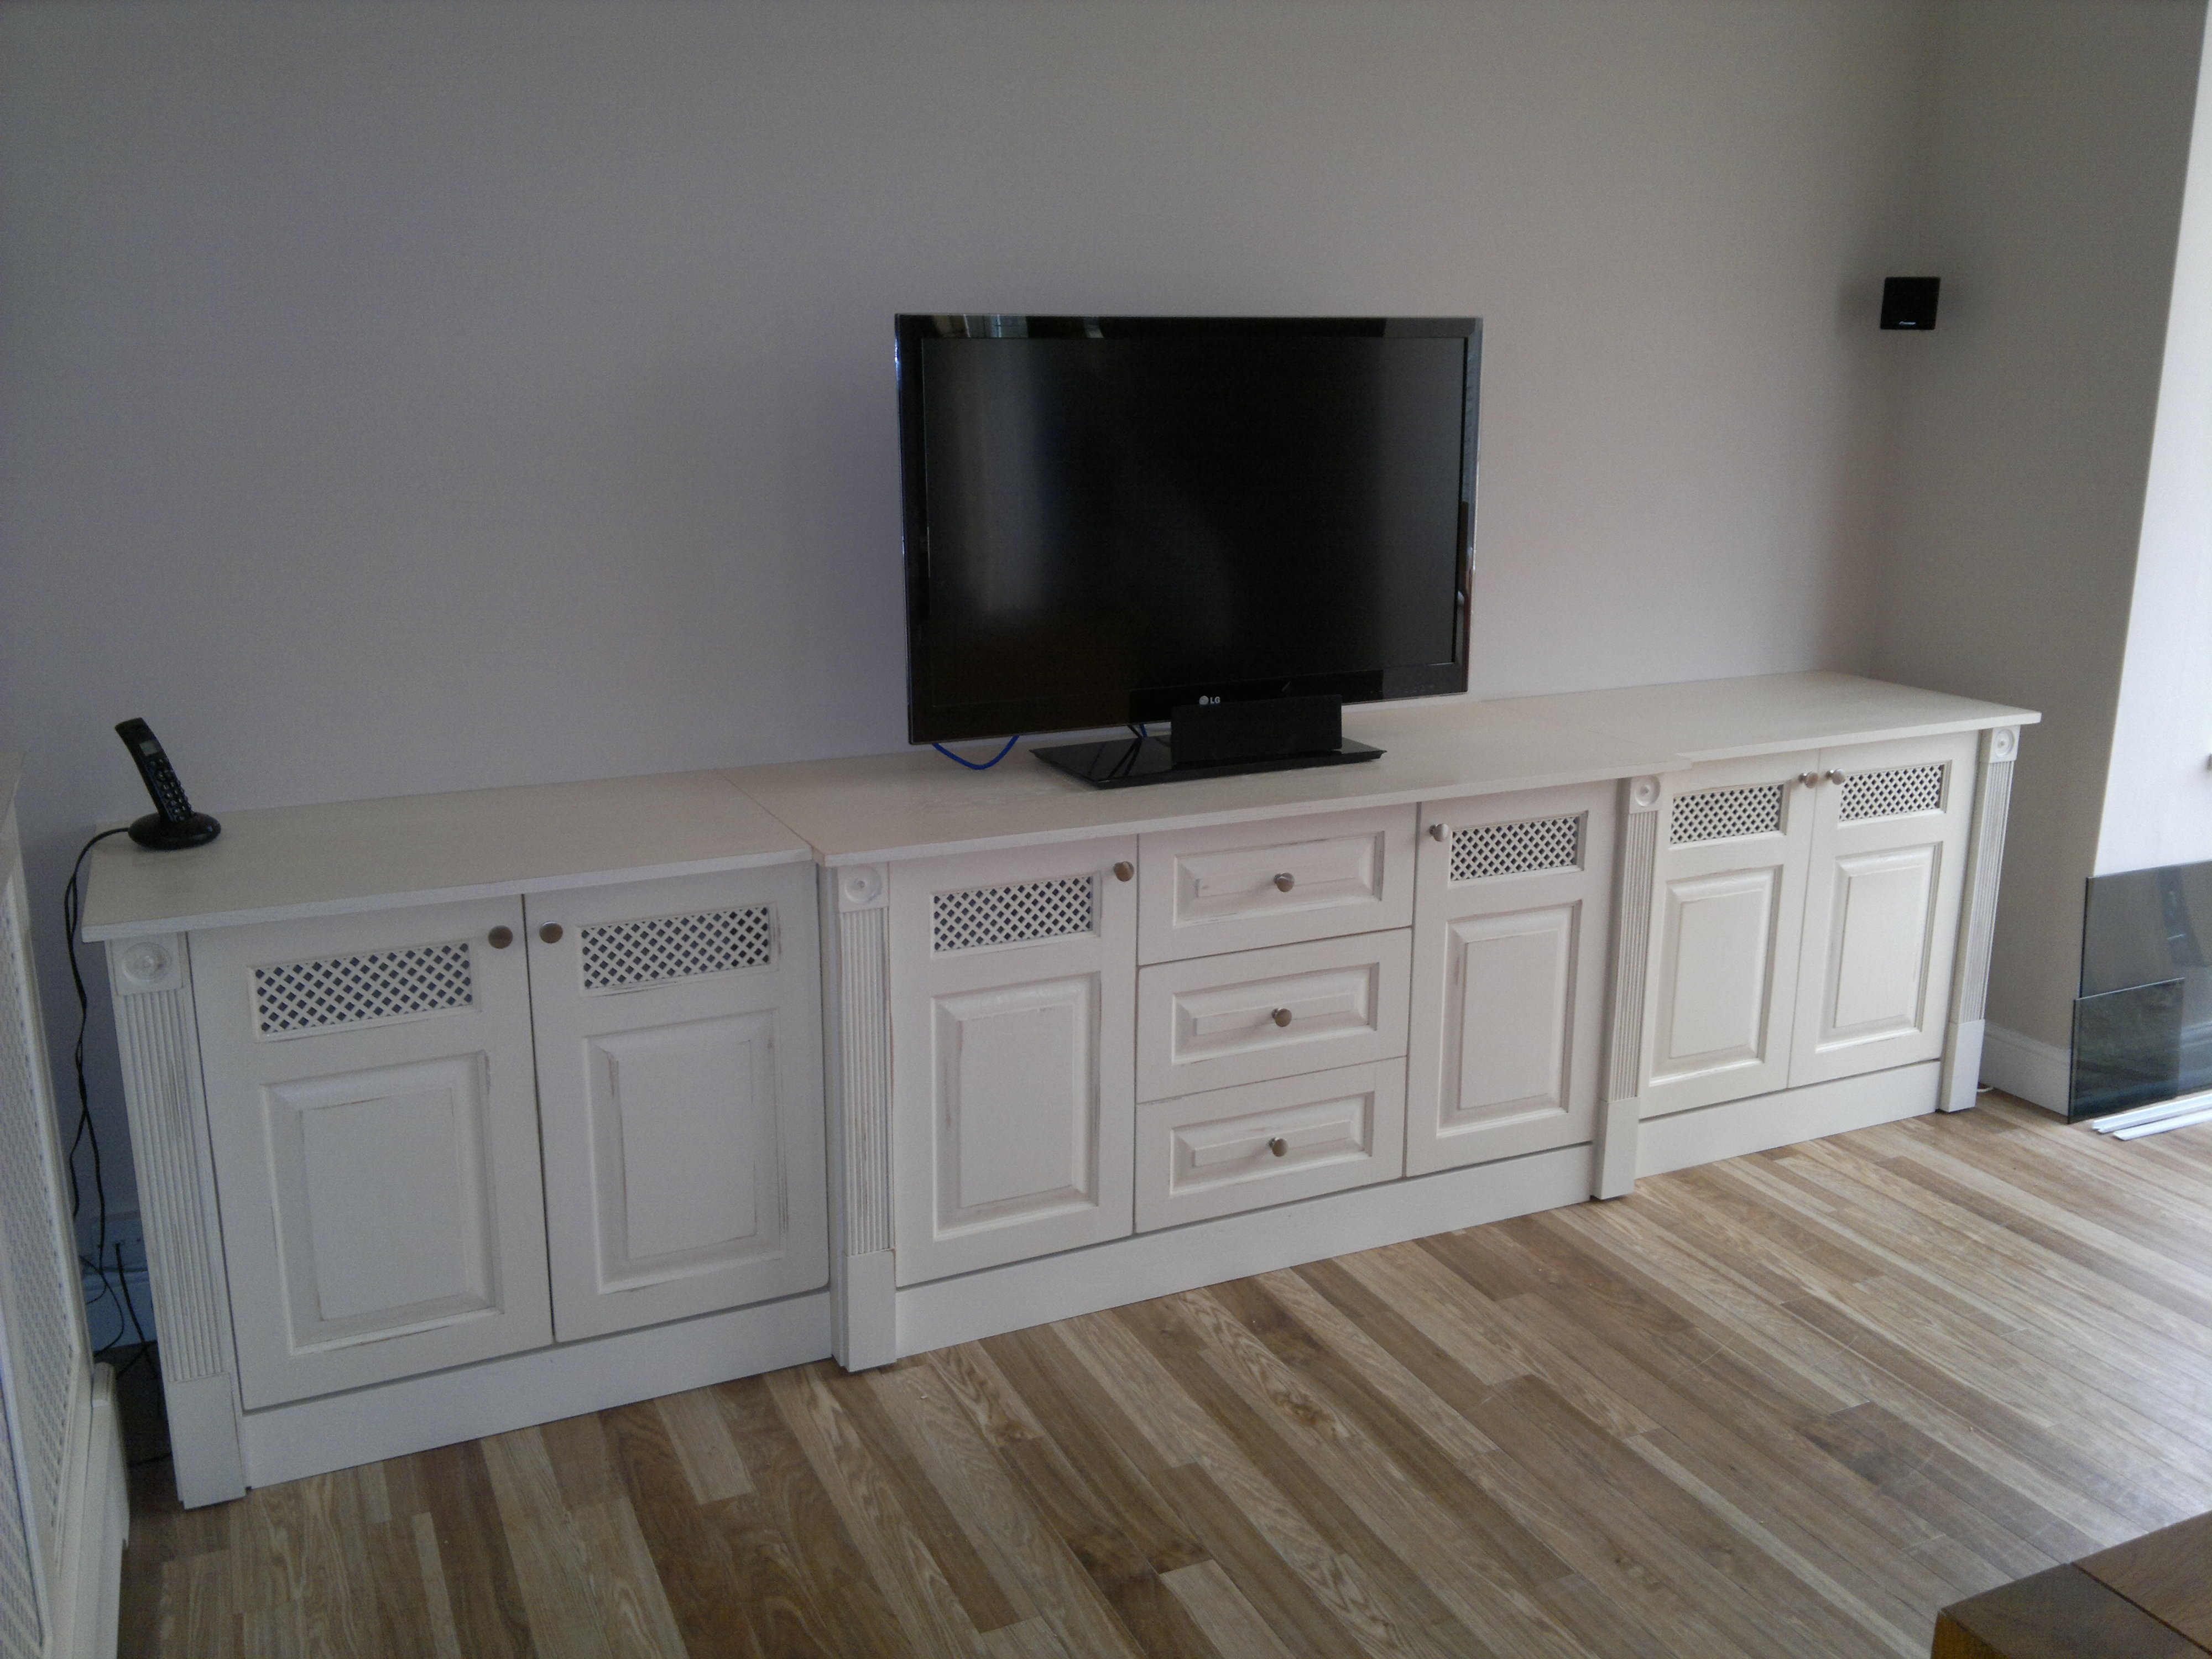 Freestanding Tdk Joinery Bespoke Tvlcd Standstv Liftstv Beds With Regard To Radiator Cover Tv Stand (View 5 of 15)